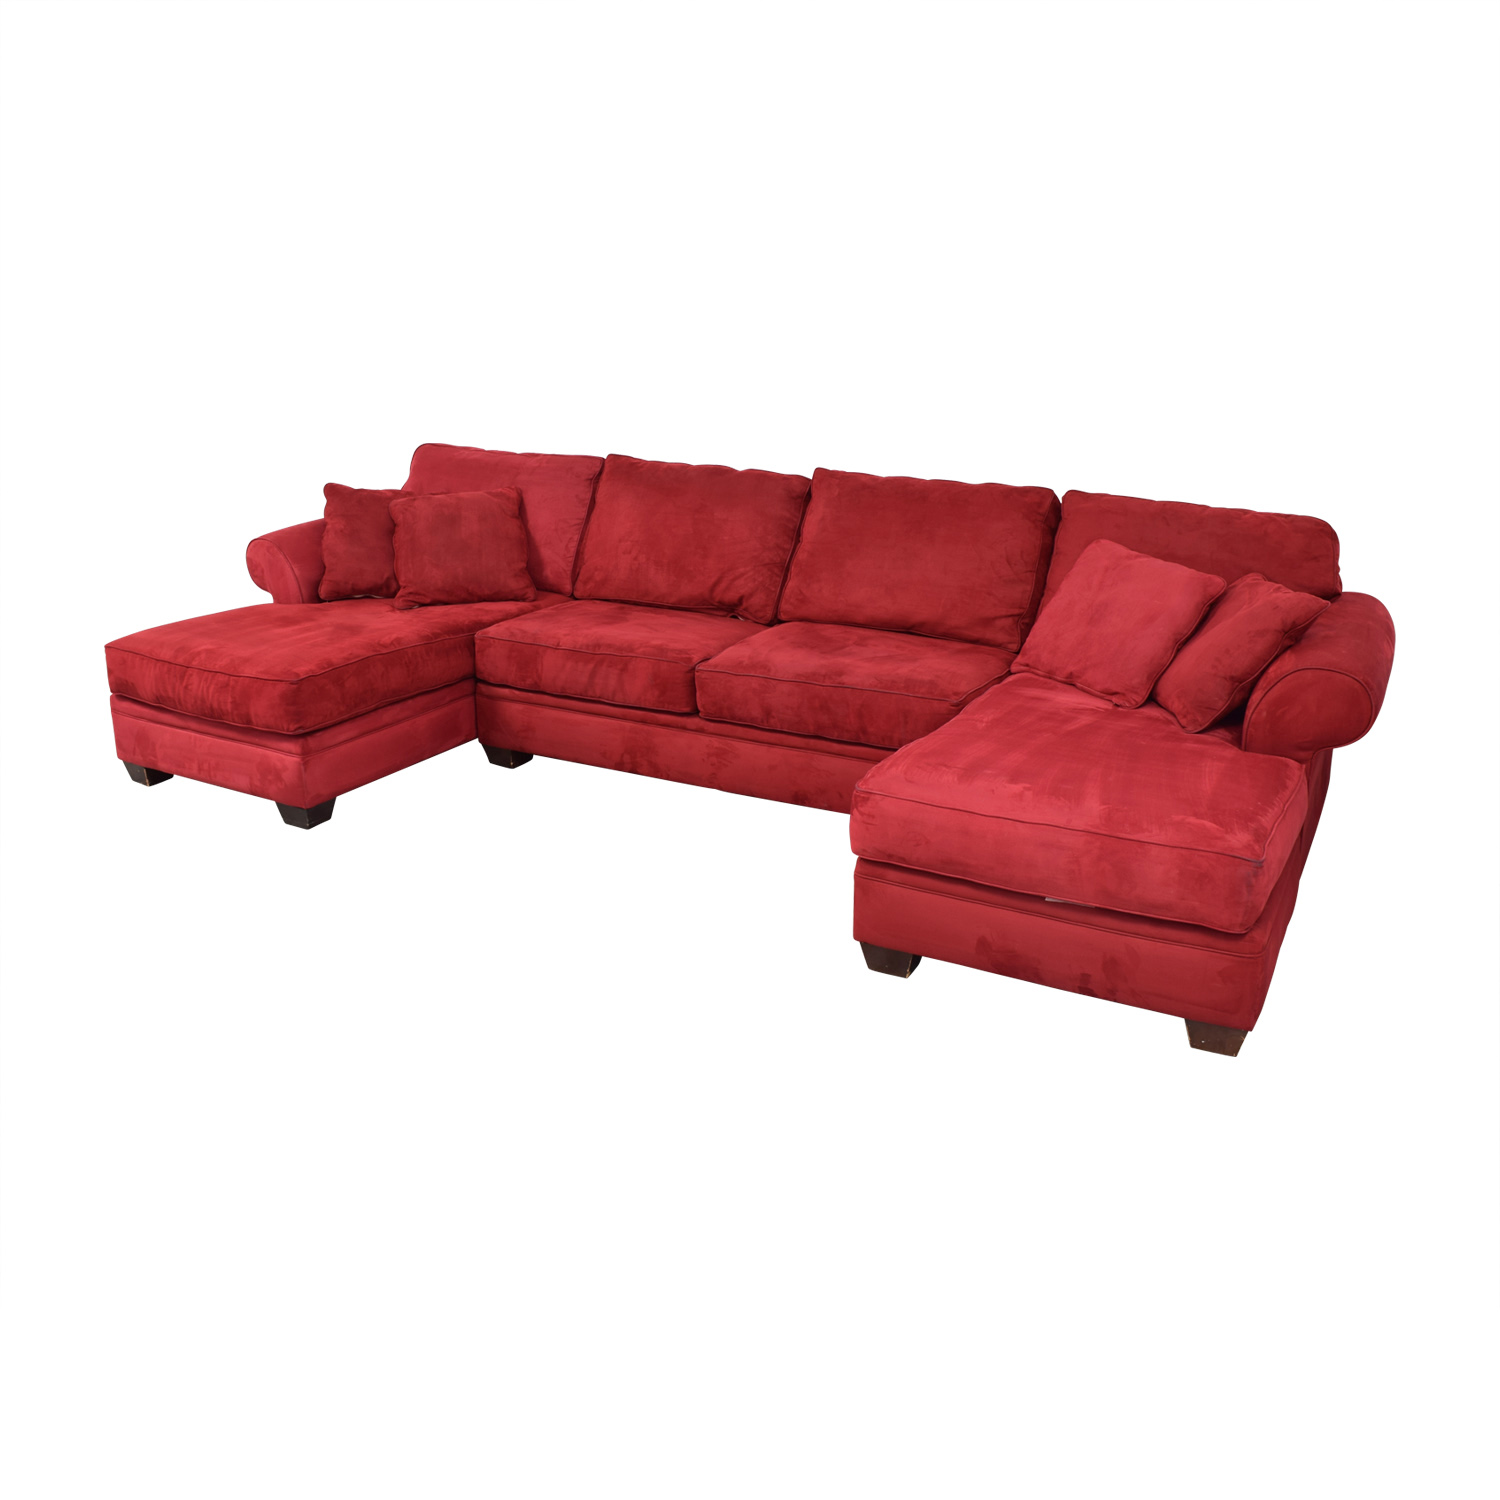 85 Off Macy S Macy S U Shaped Red Double Chaise